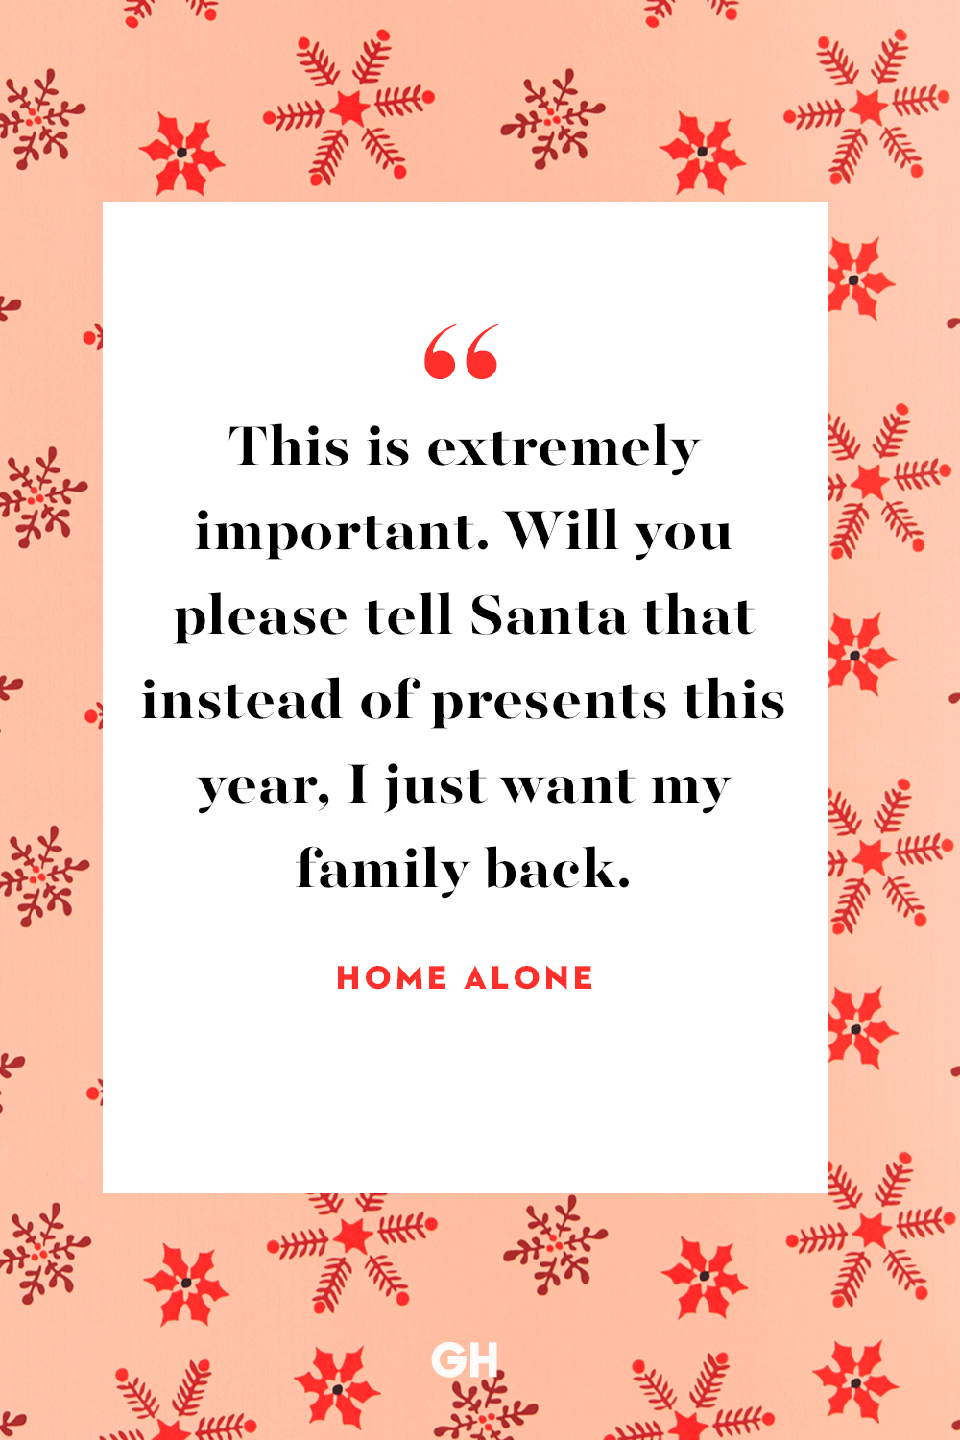 <p>This is extremely important. Will you please tell Santa that instead of presents this year, I just want my family back.</p>